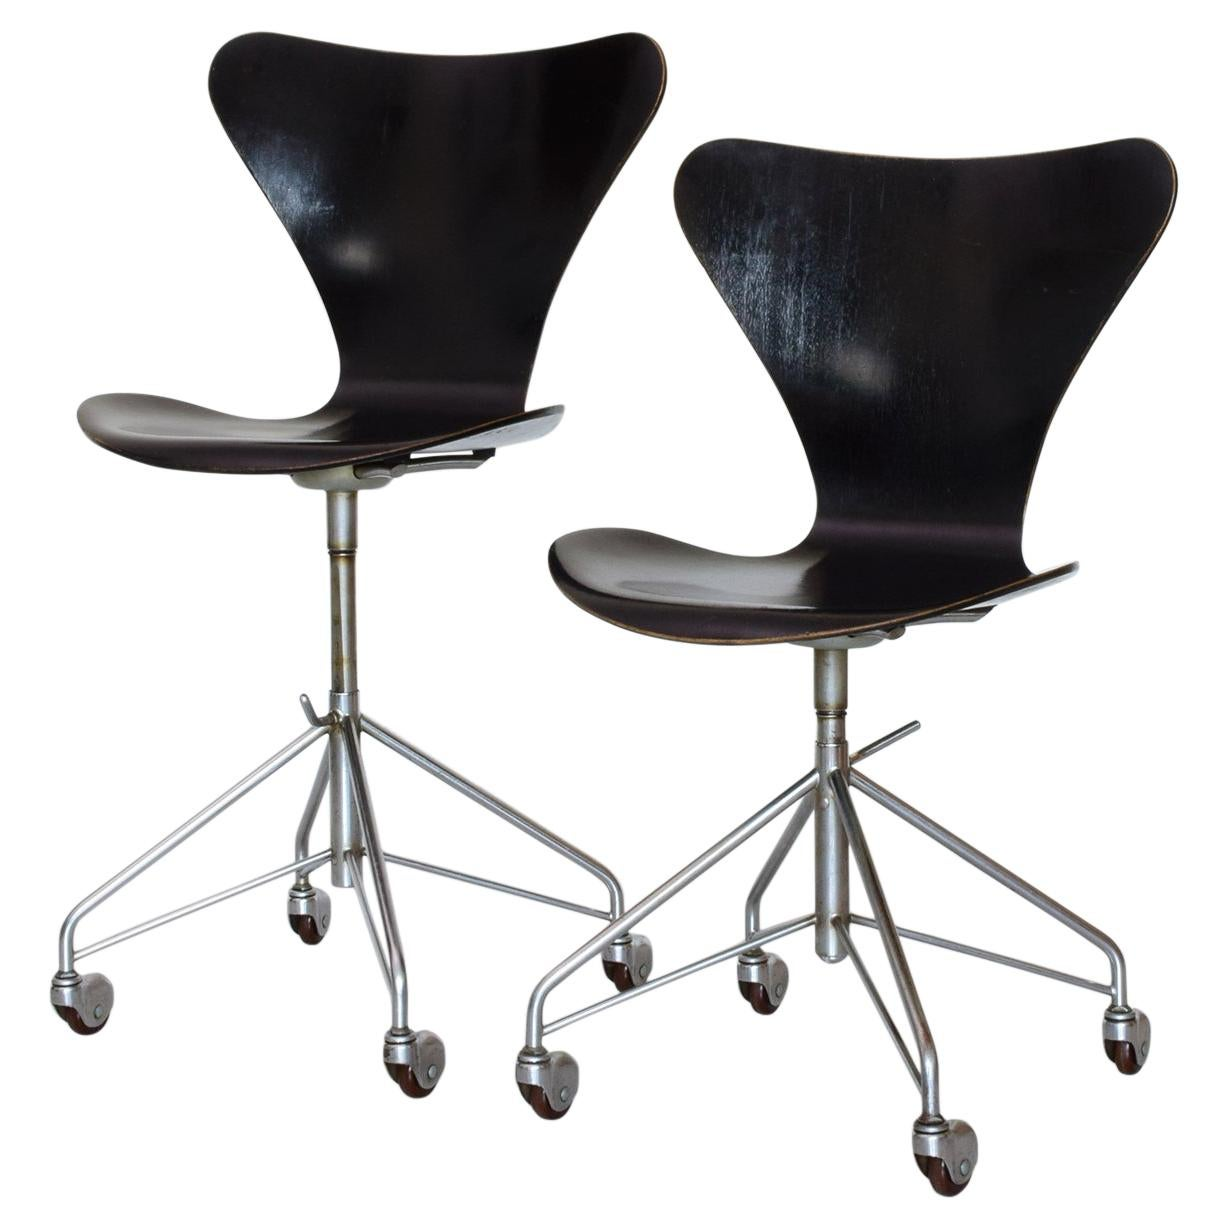 Arne Jacobsen Model 3117 Adjustable Desk Work Chairs, 1955, Early Matching Pair